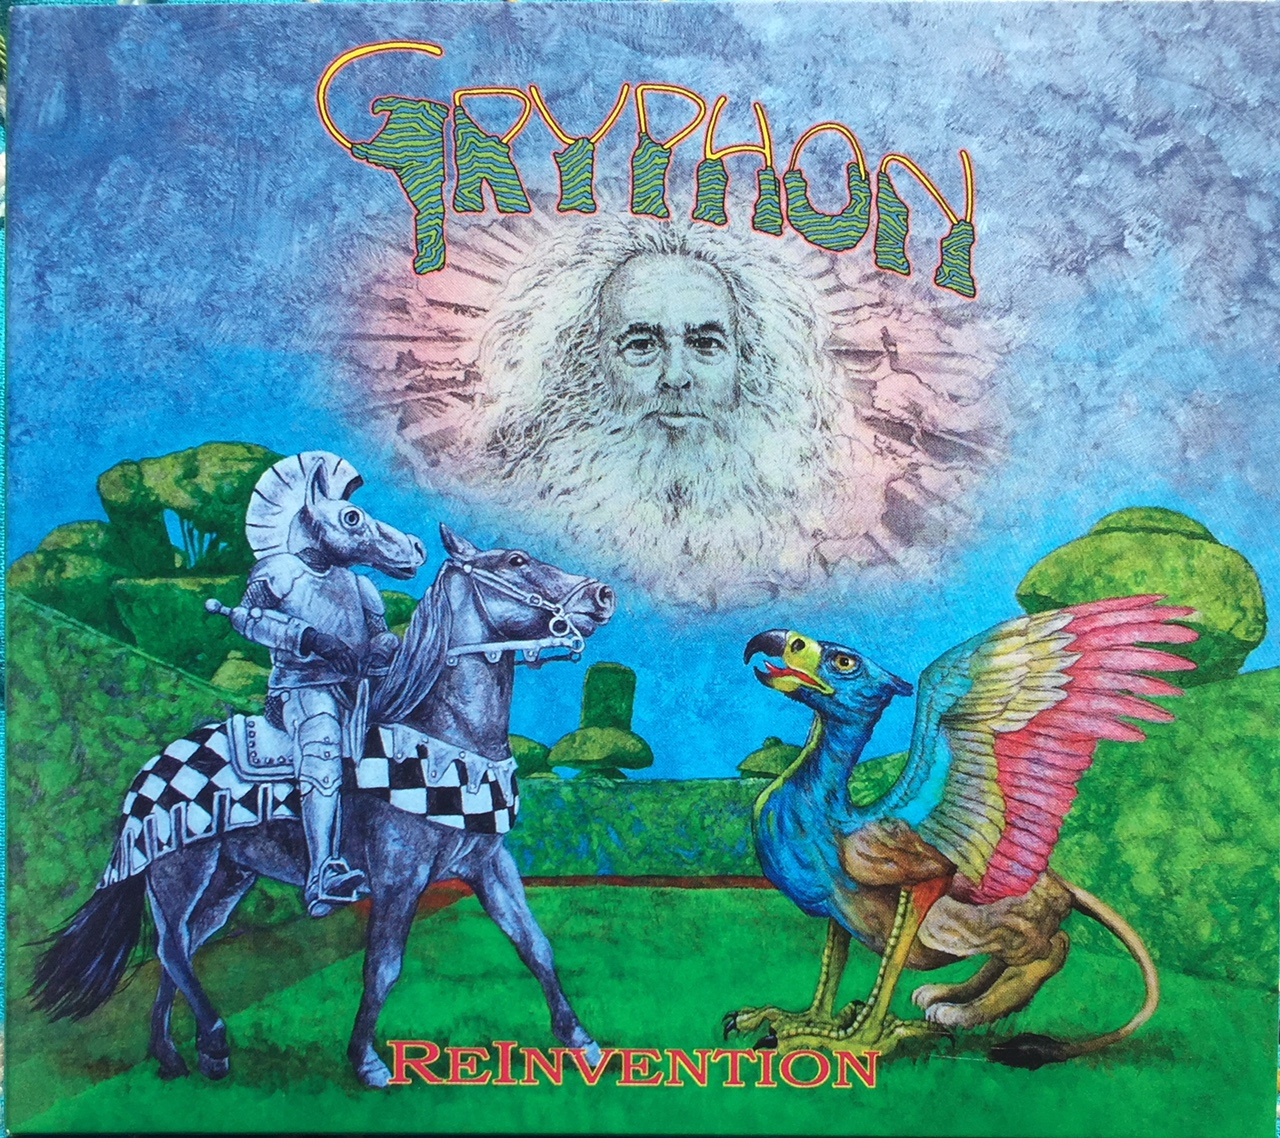 Gryphon's ReInvention Reviewed